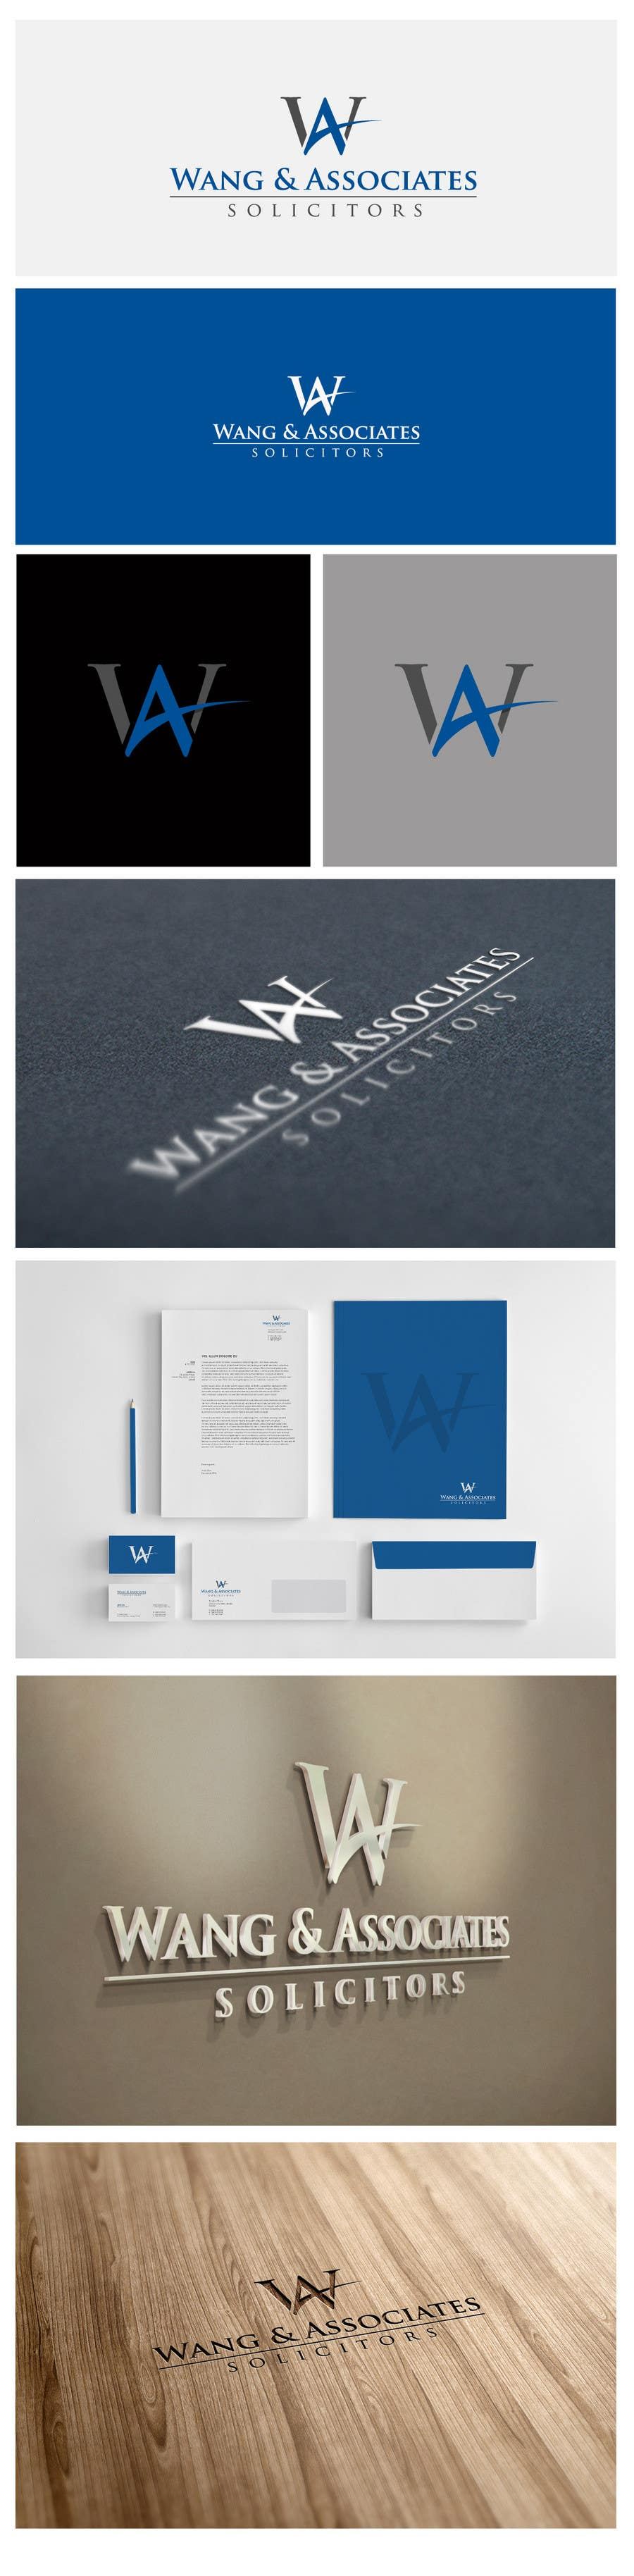 Contest Entry #33 for Logo Design for Wang & Associates Solicitors